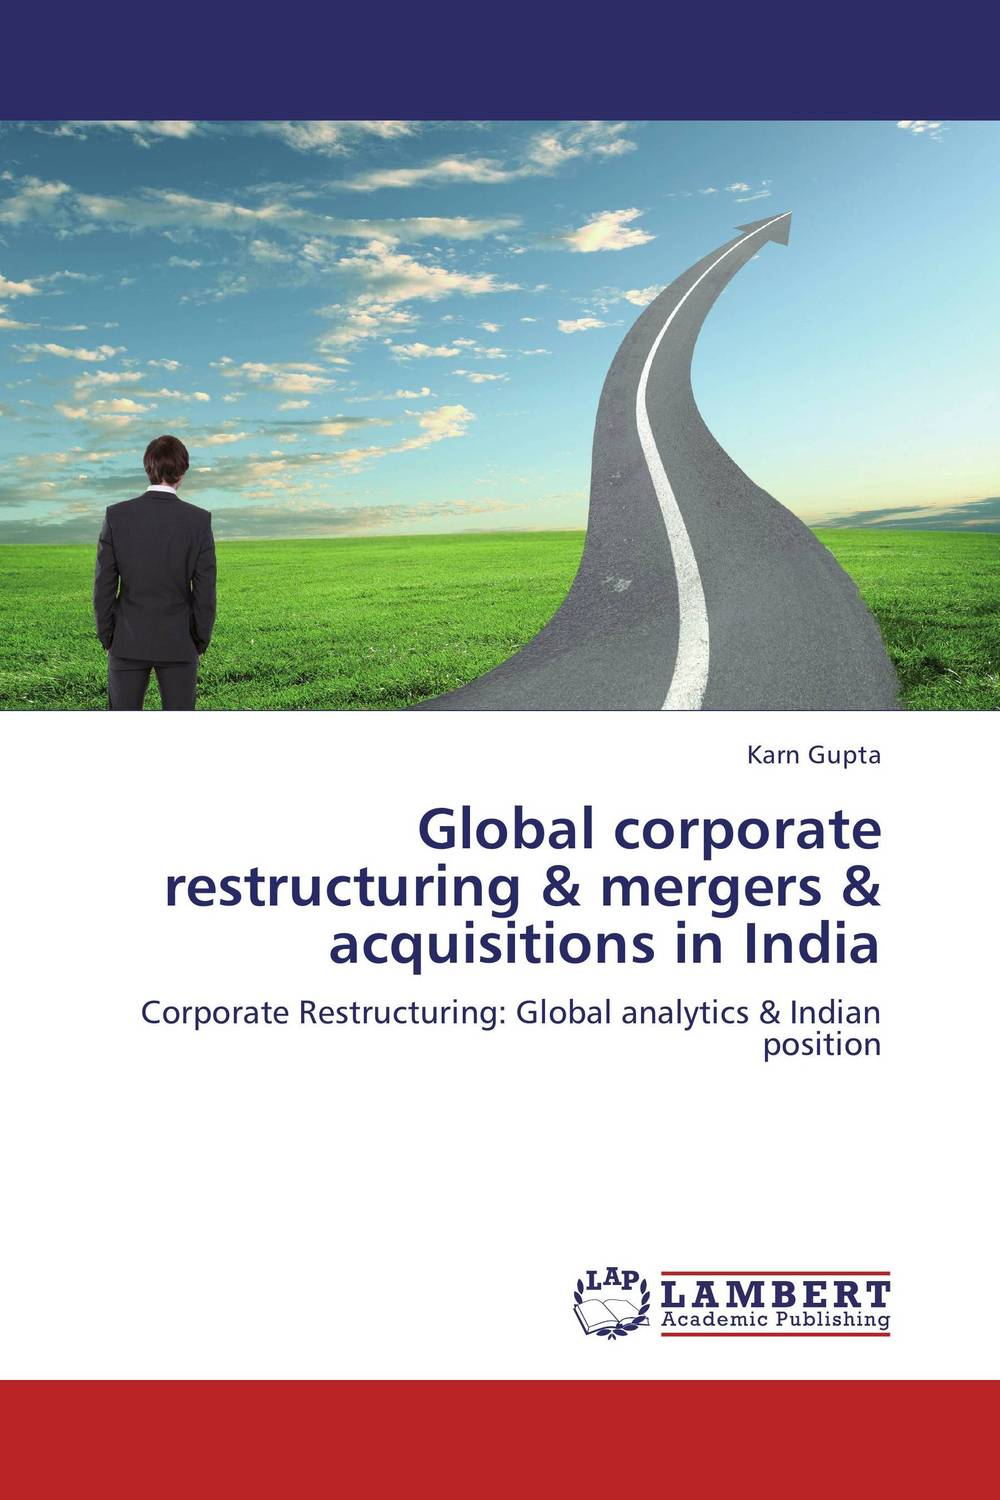 Global corporate restructuring & mergers & acquisitions in India ecology of wildife in special reference to gir lion p leo persica